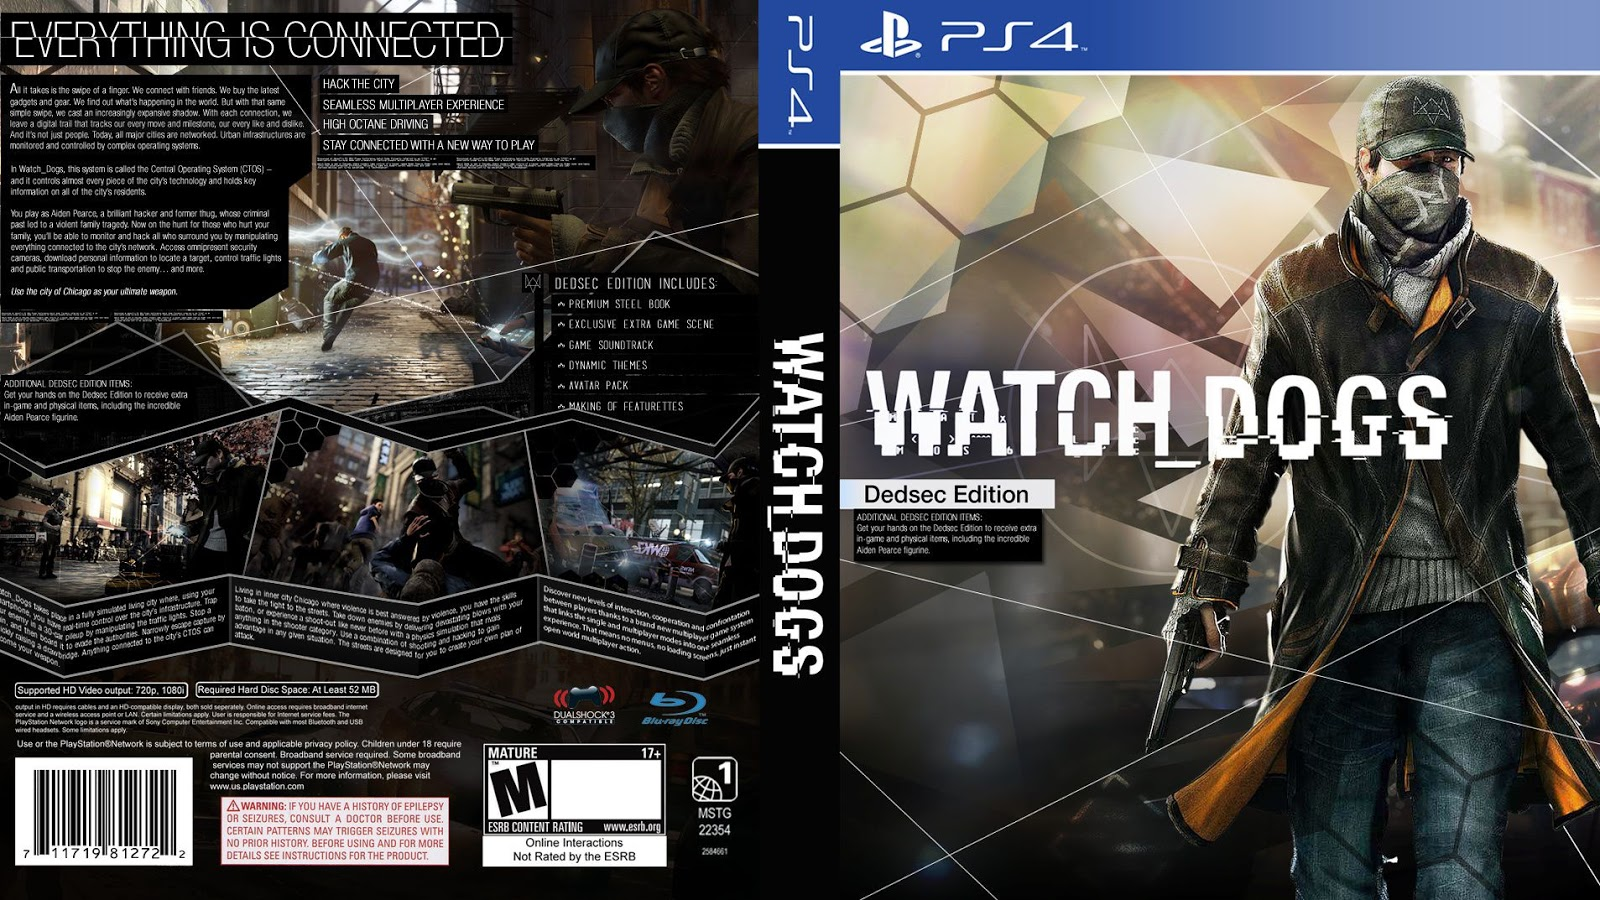 Capa Watch Dogs Dedsec Edition PS4